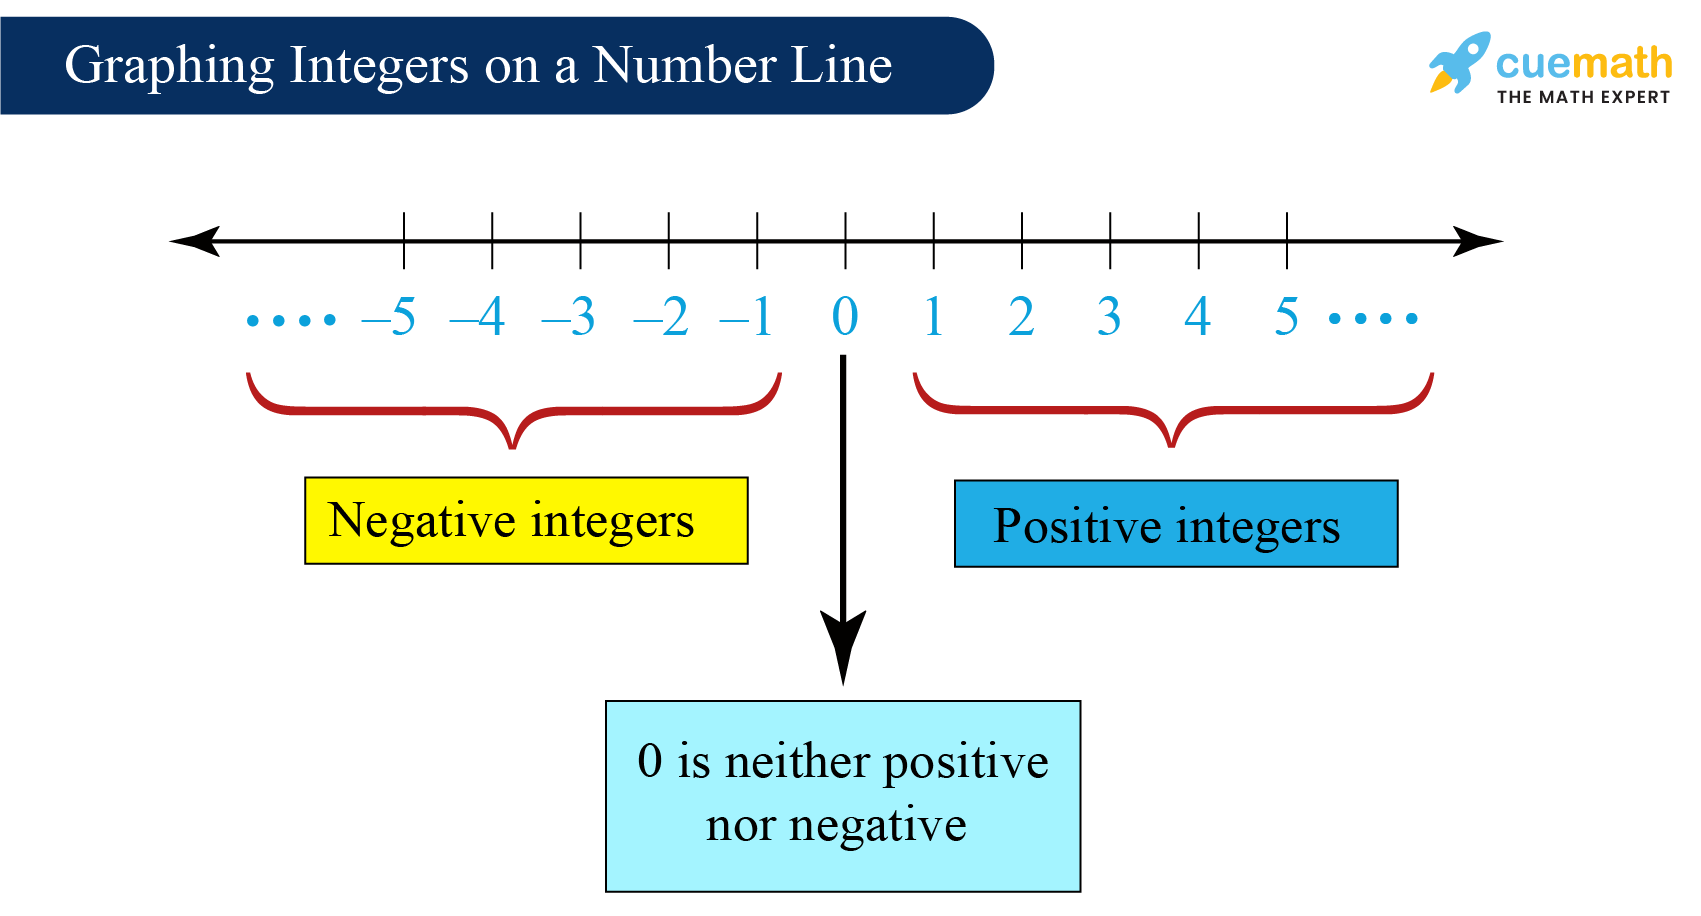 Graphing integers